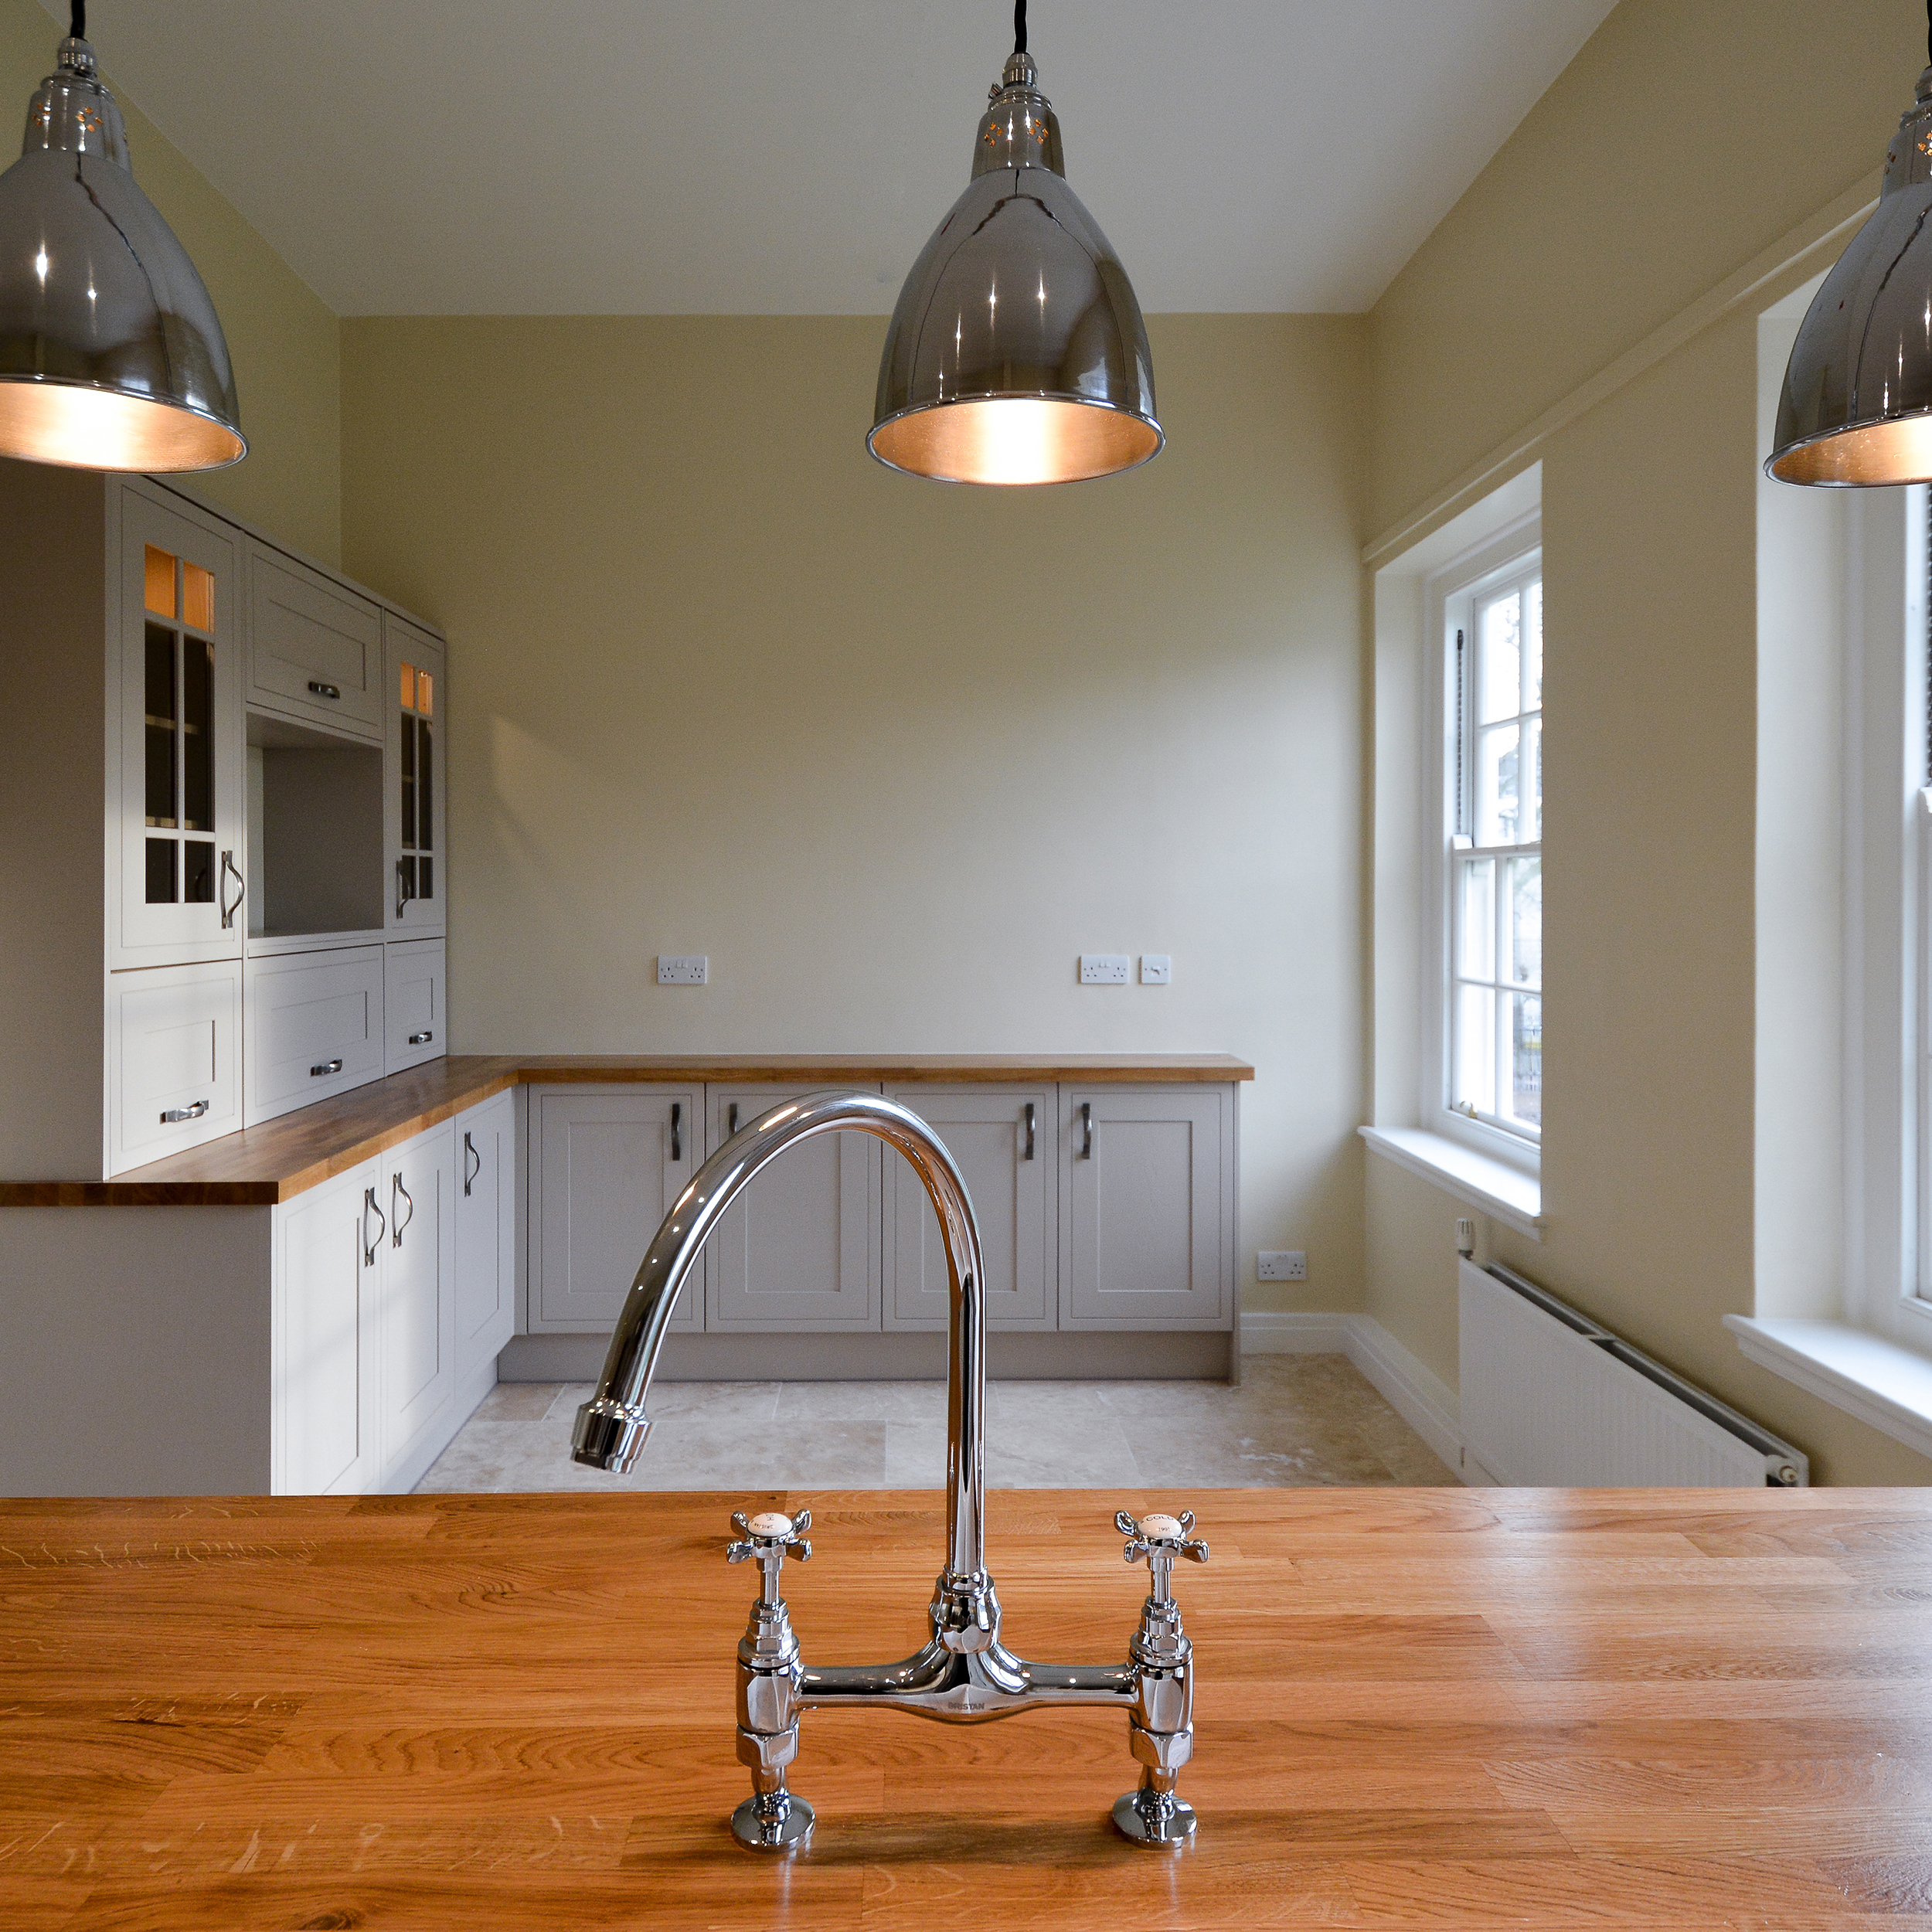 High end refurbishment shows the kitchen space